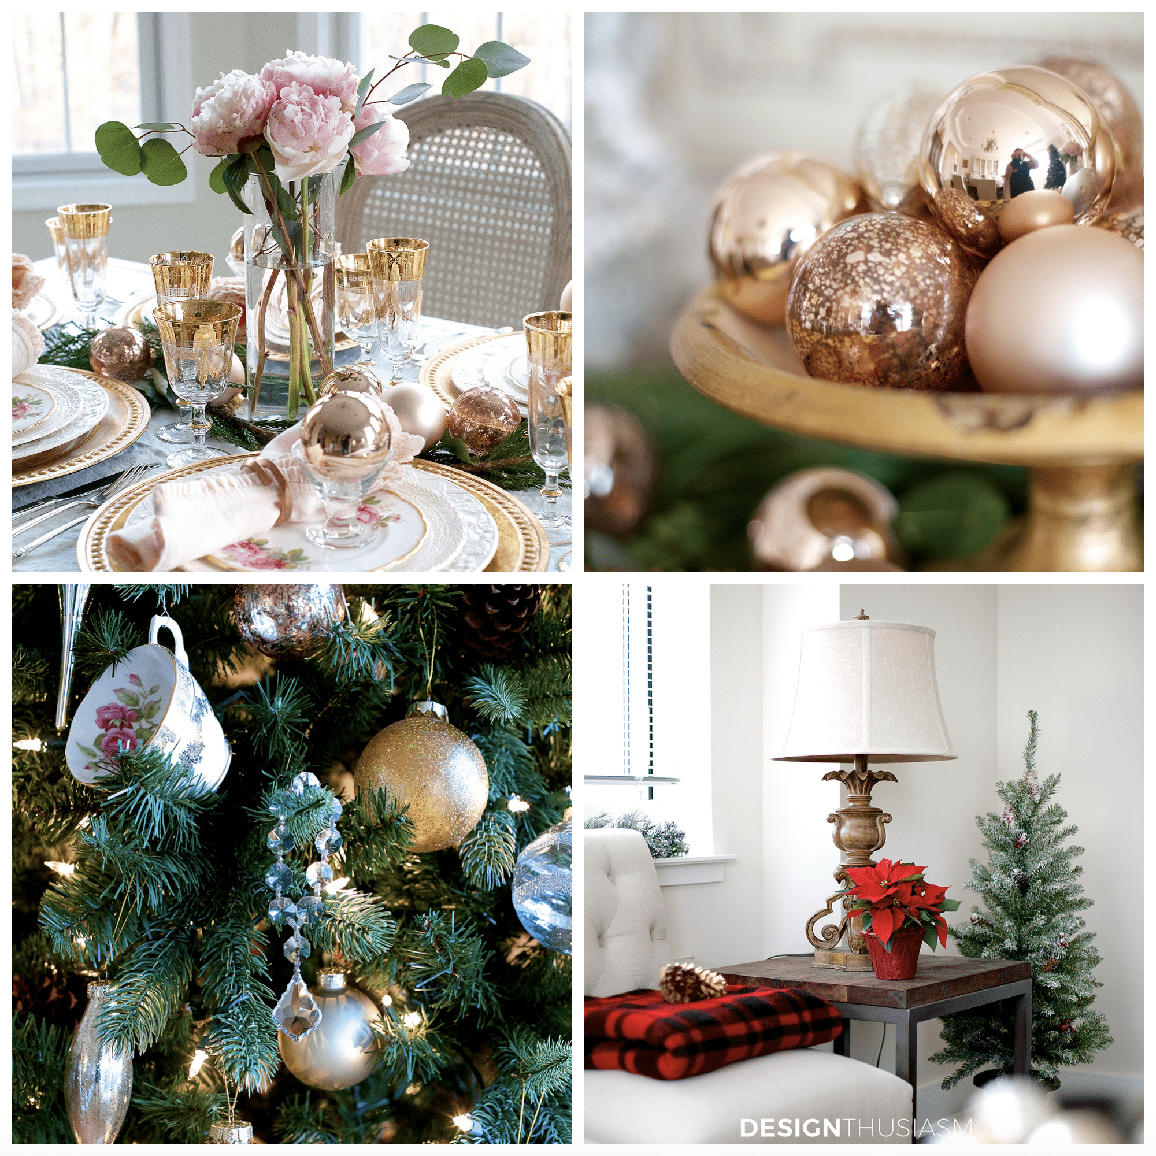 Christmas Baubles and Other Holiday Decor - designthusiasm.com